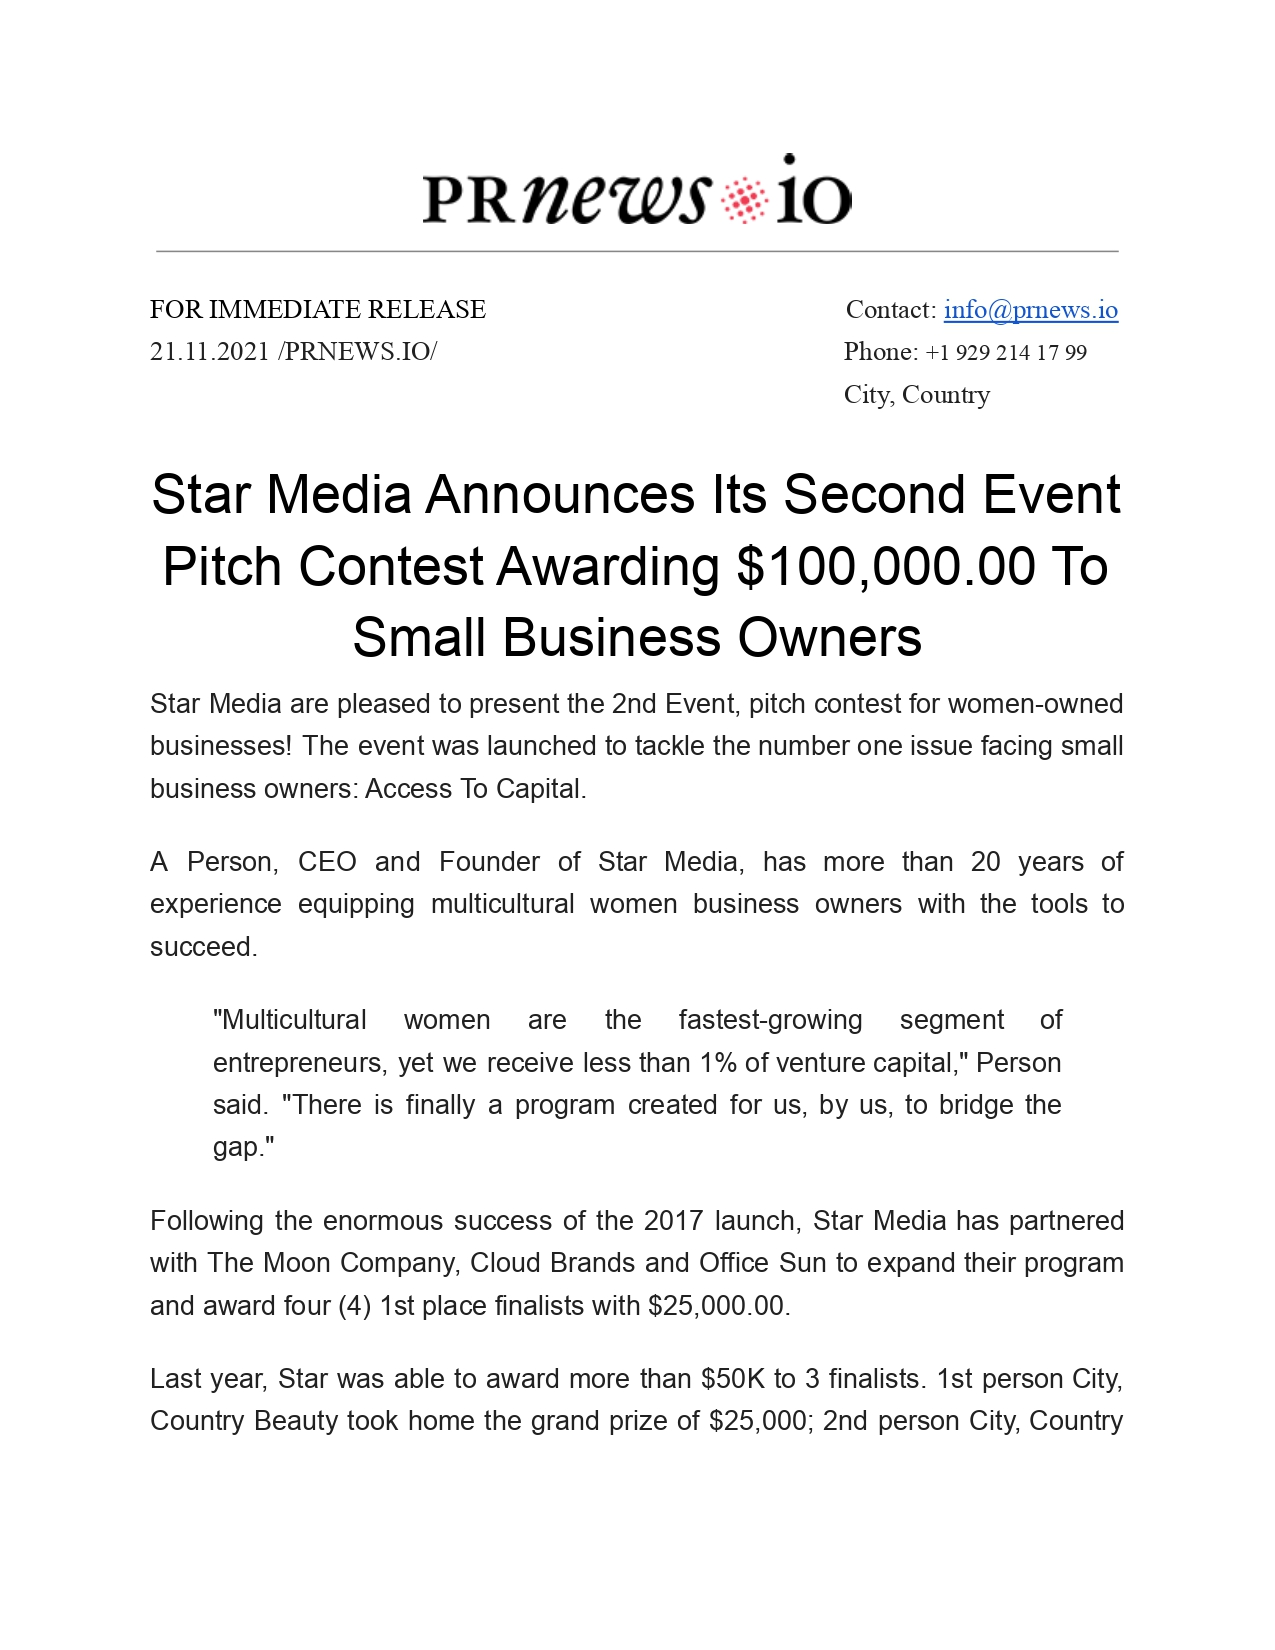 Business Press Release Example